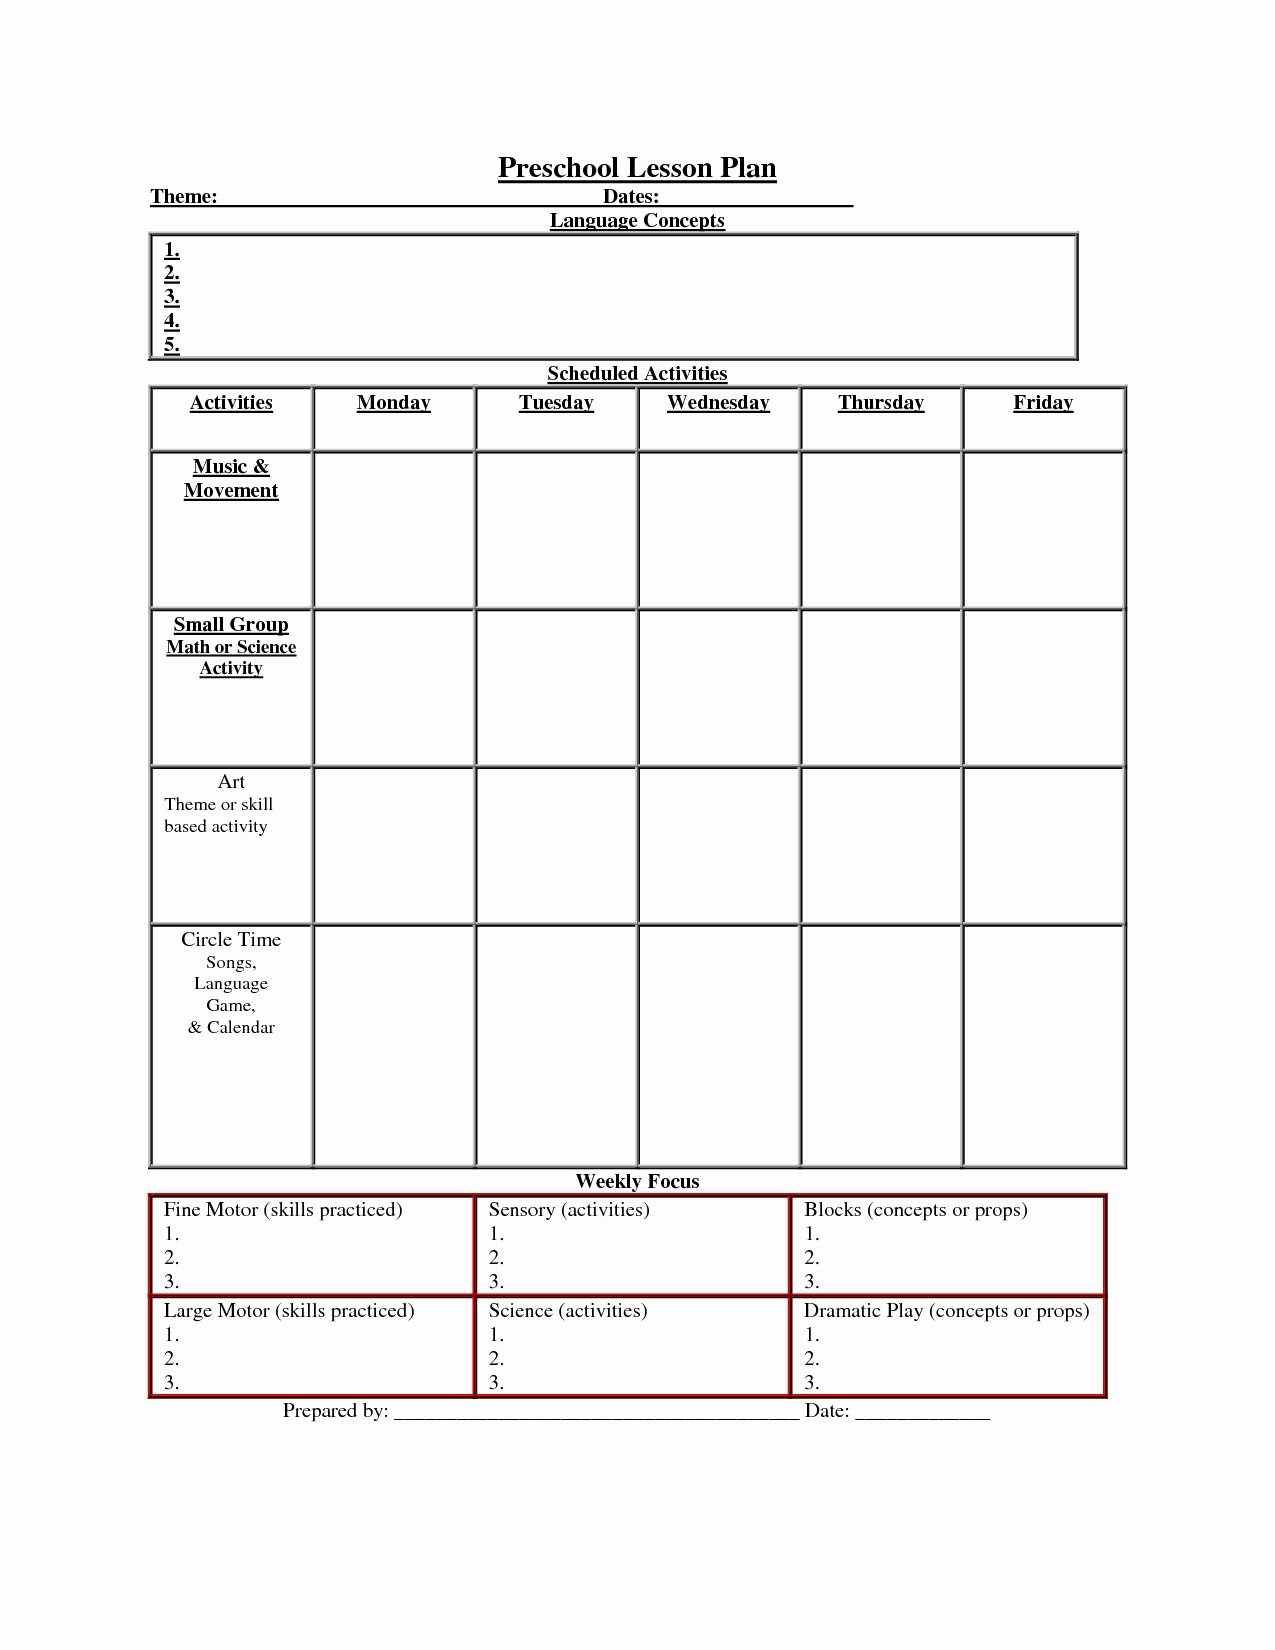 Lesson Plan Template Preschool Fresh Printable Lesson Plan Template Nuttin but Preschool